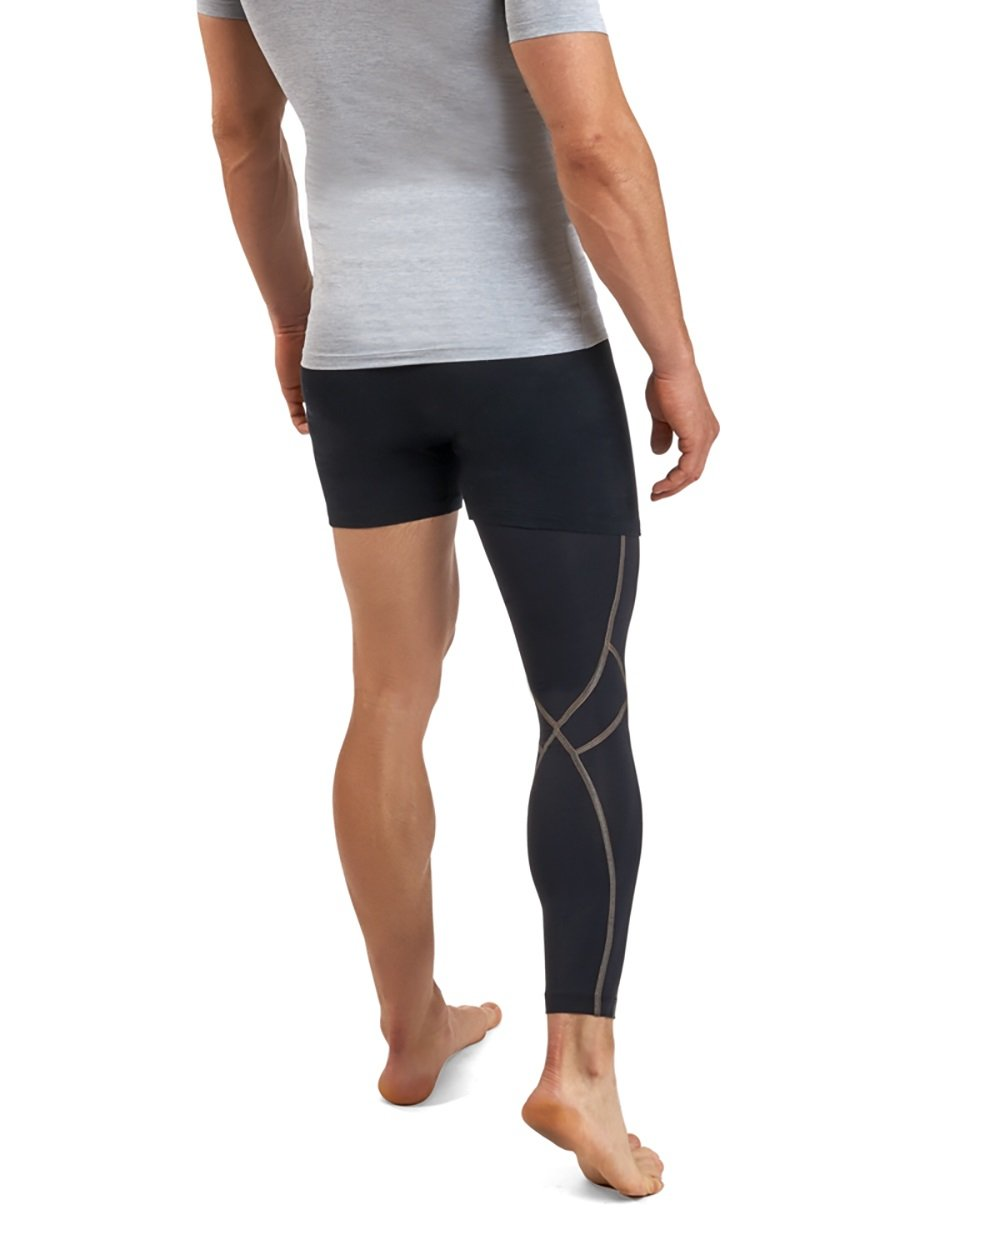 Tommie Copper Men's Performance Full Leg Sleeves 2.0, Small, Black by Tommie Copper (Image #3)